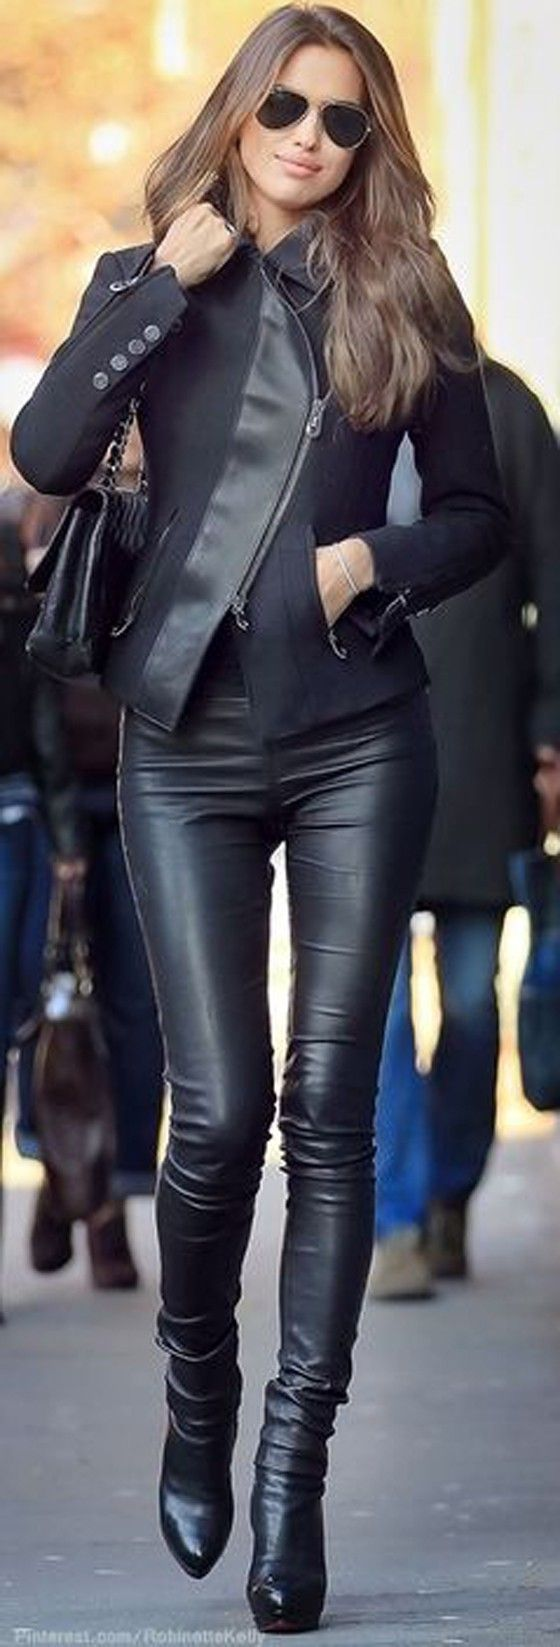 Best 25+ Leather leggings ideas on Pinterest | Leather pants outfit Black leather pants and ...